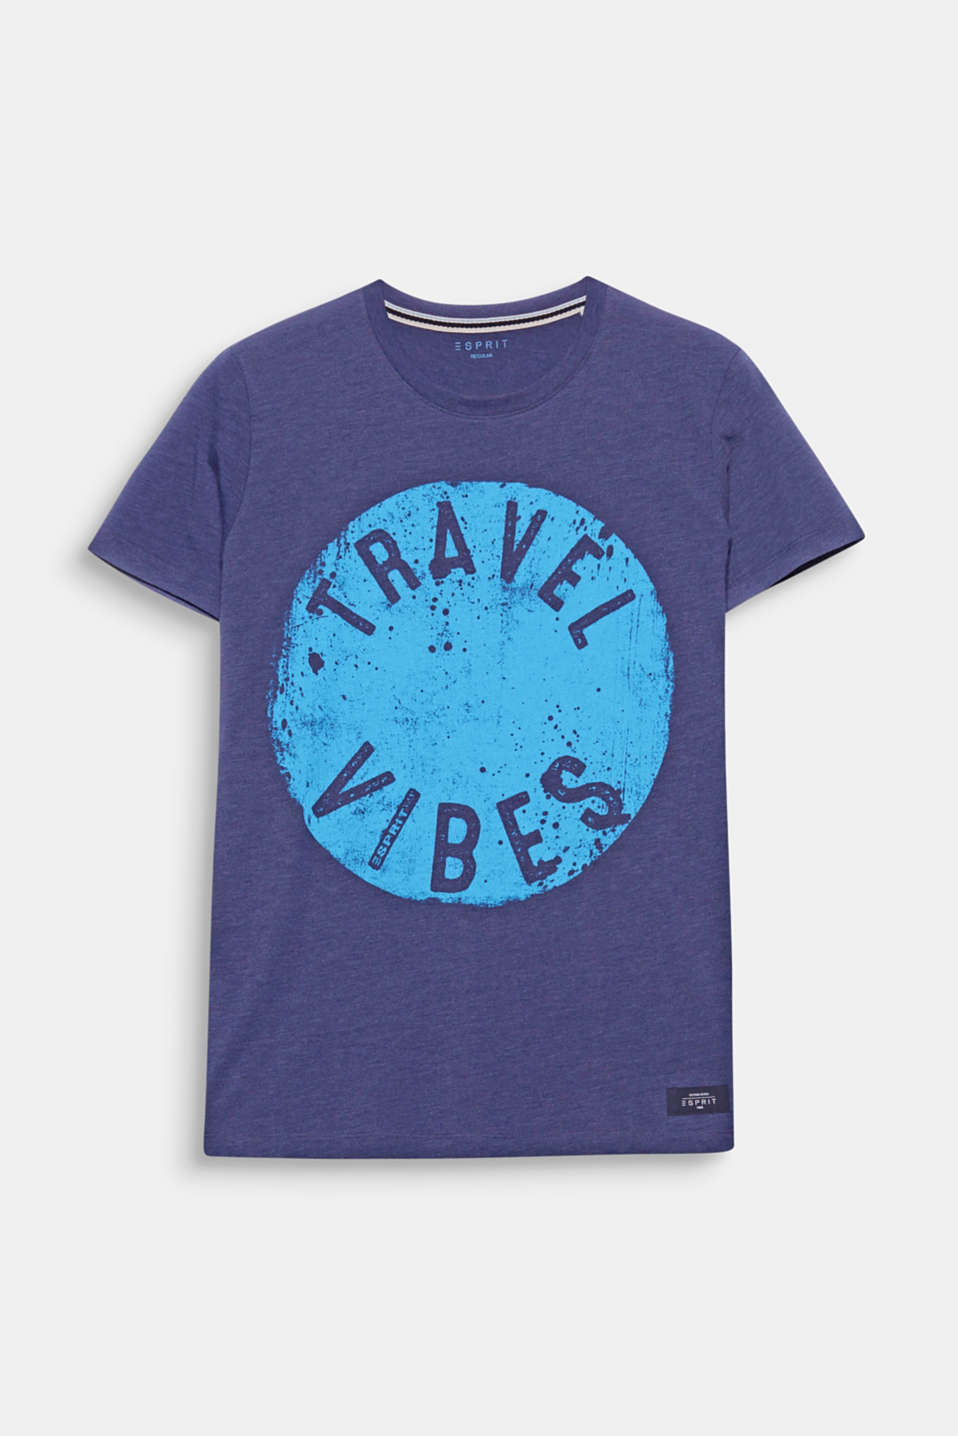 Melange jersey plus a vintage print - a super cool look for this t-shirt in comfortable, pure cotton!